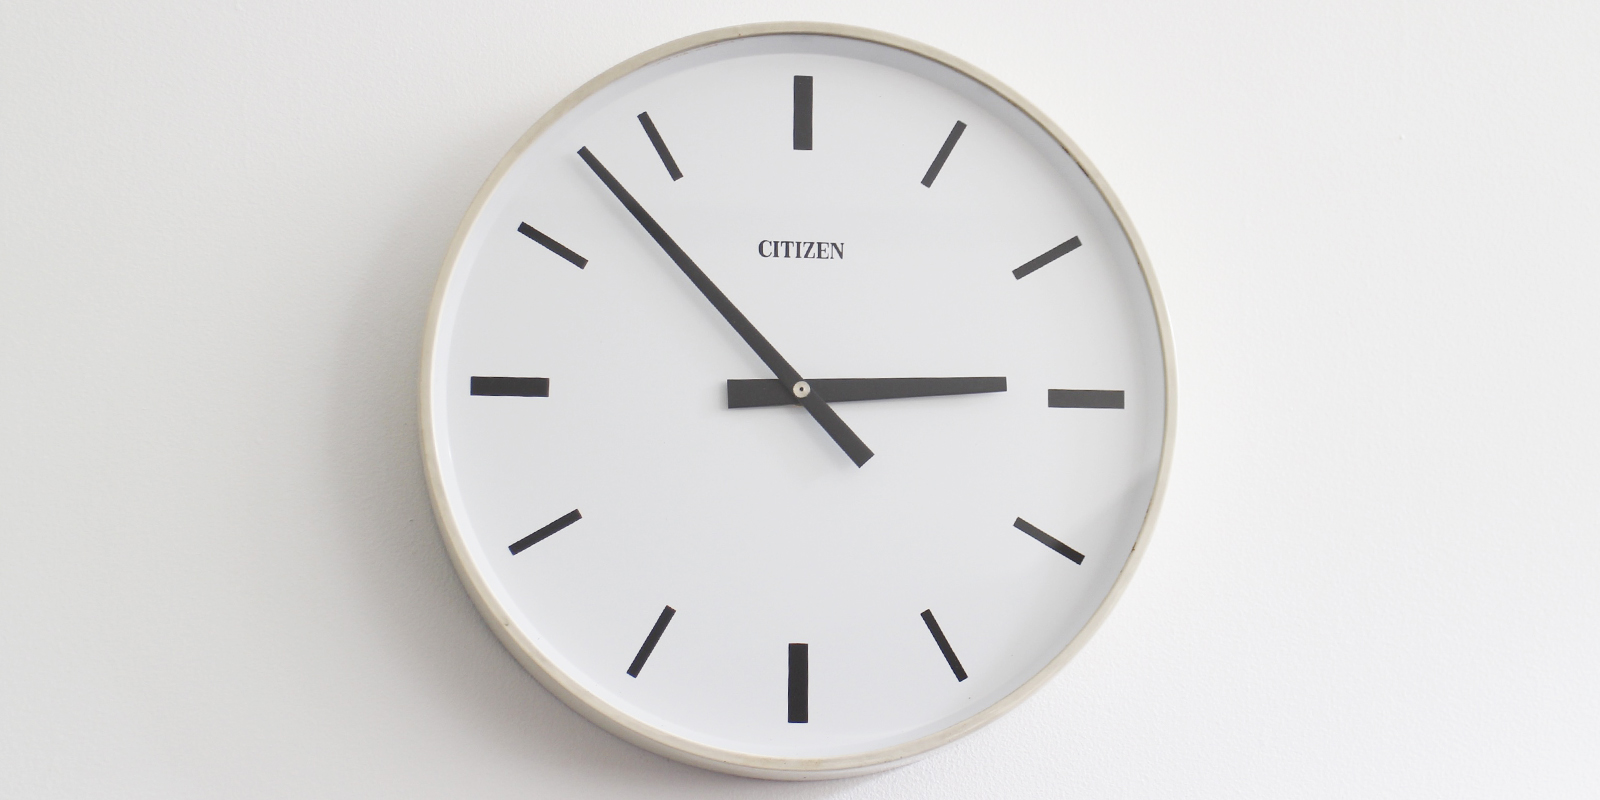 【sold out】CITIZEN ウォールクロック・アイボリー(USED)[宅配便]